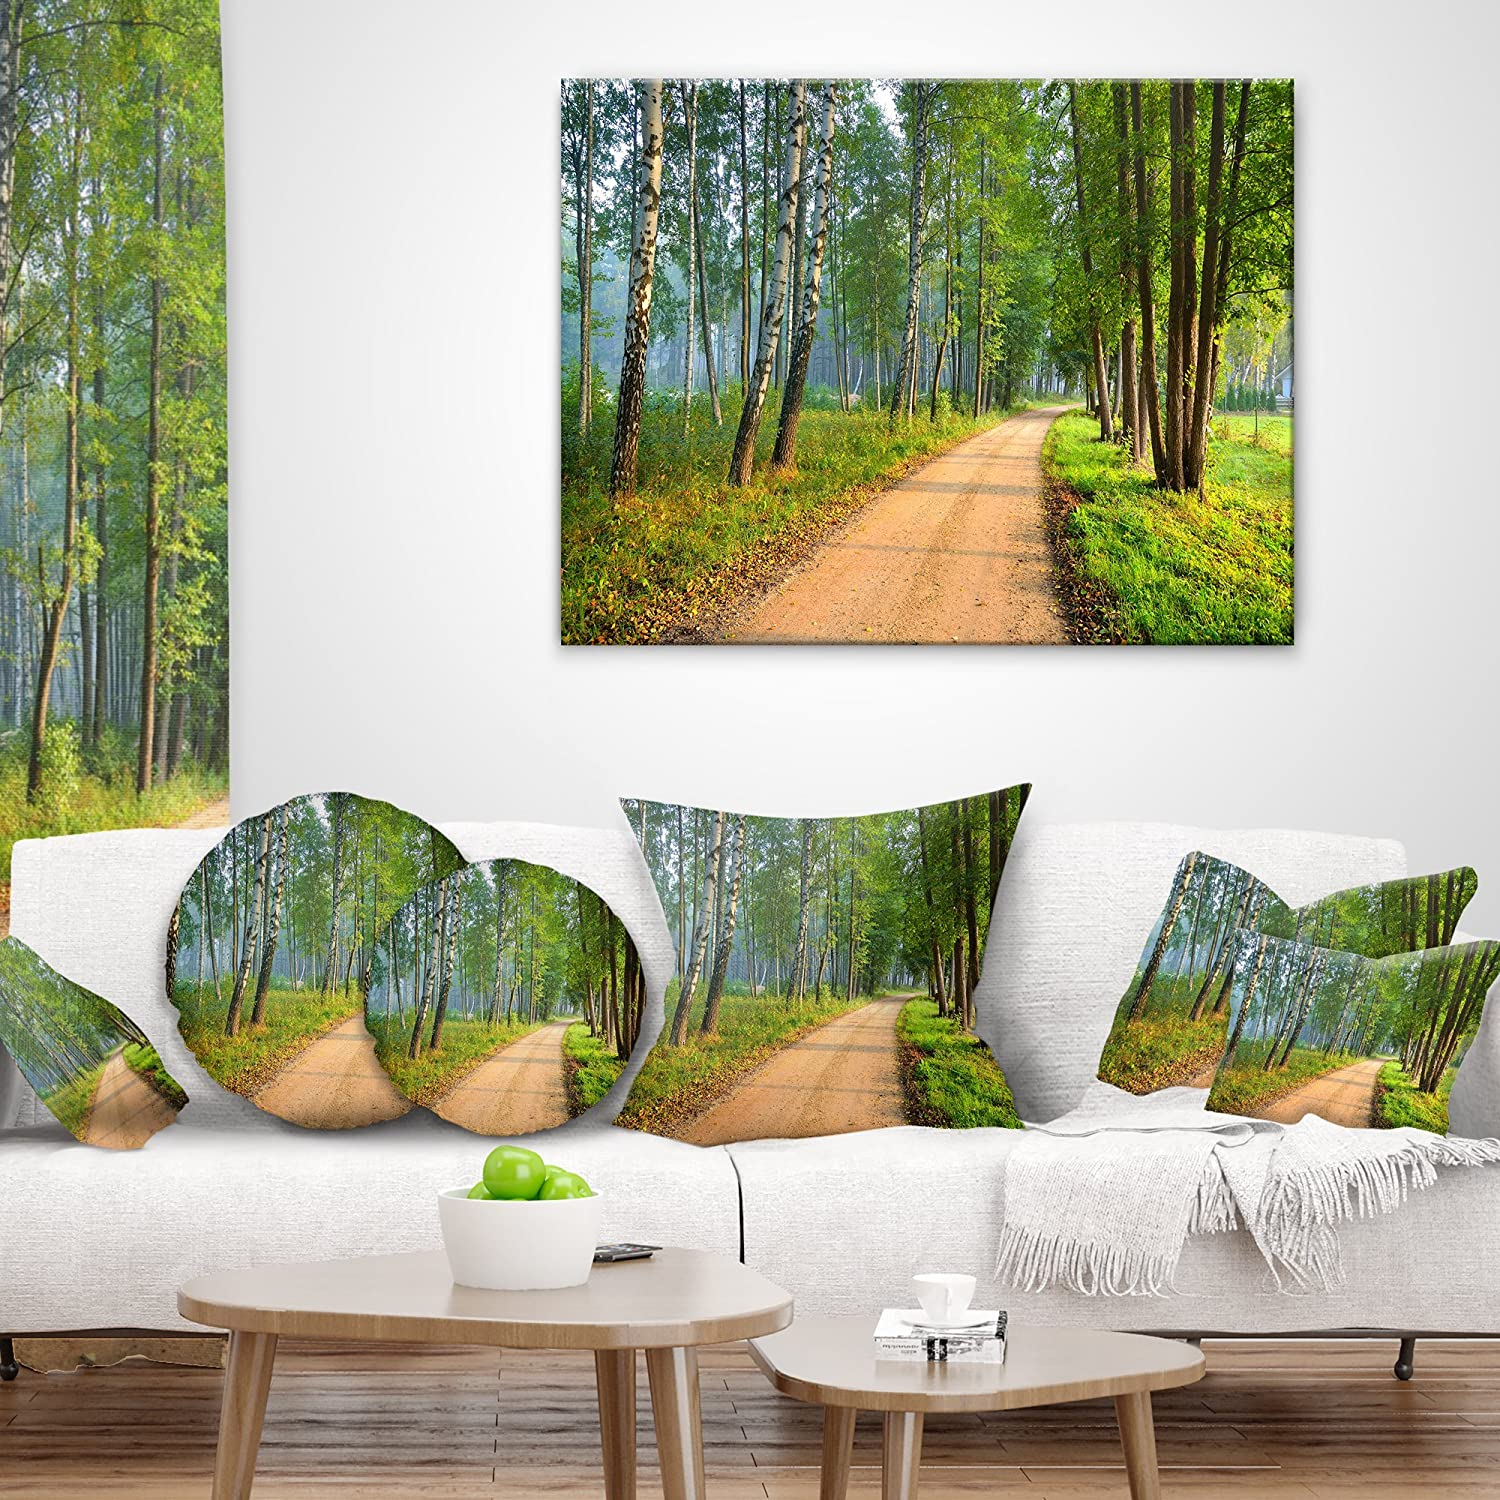 Sofa Throw Pillow 18 x 18 Designart CU9738-18-18 Road in Green Morning Forest Landscape Photo Cushion Cover for Living Room